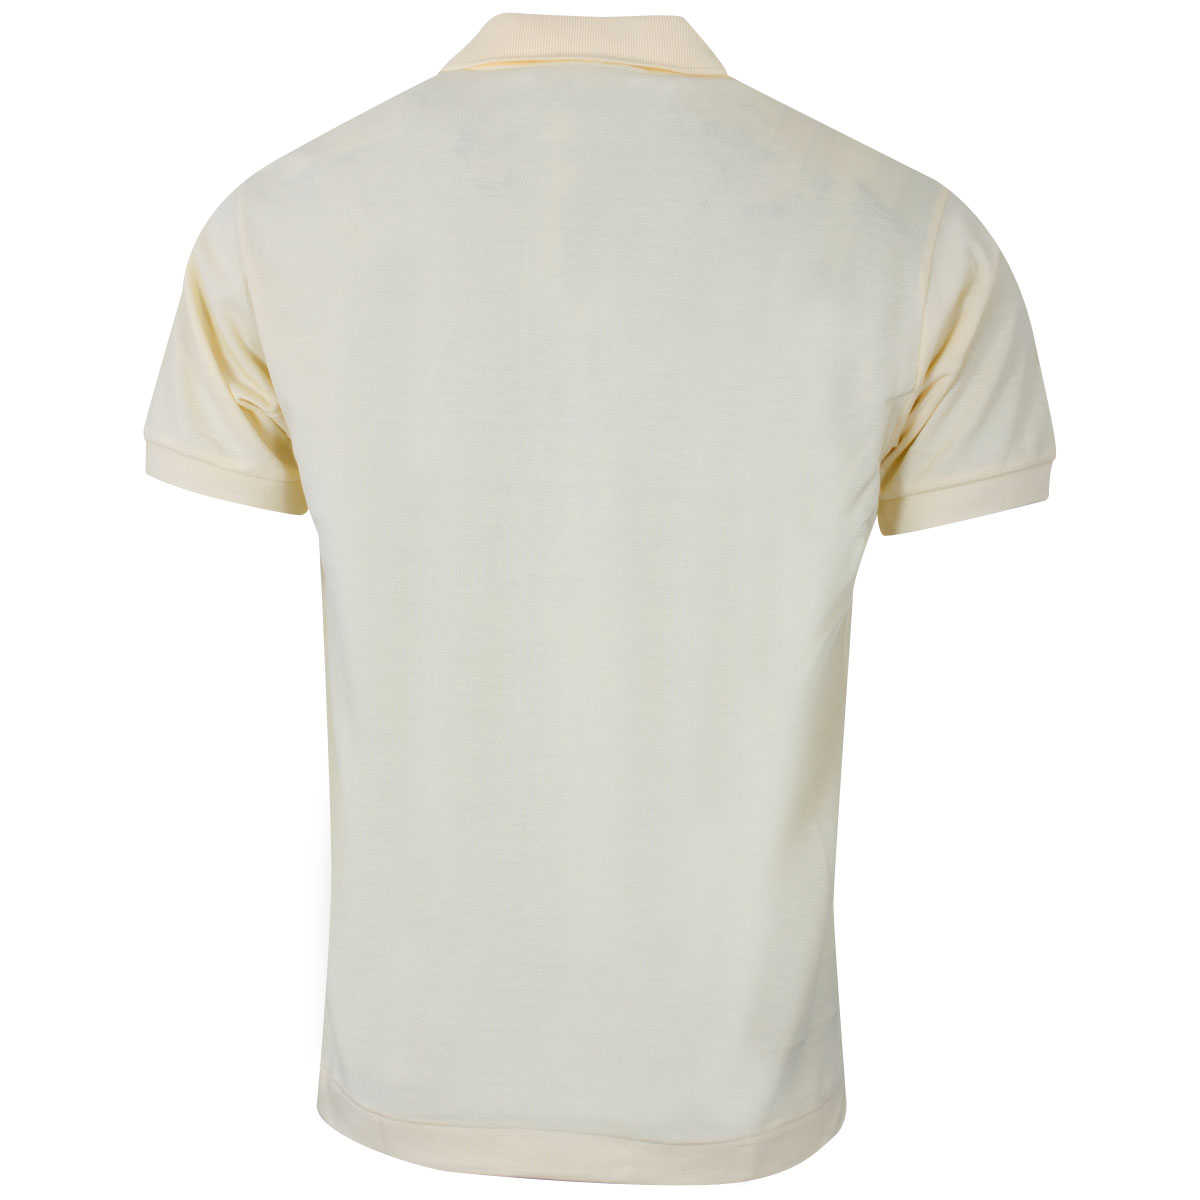 Lacoste-Mens-Classic-Cotton-L1212-Short-Sleeve-Polo-Shirt-26-OFF-RRP thumbnail 49